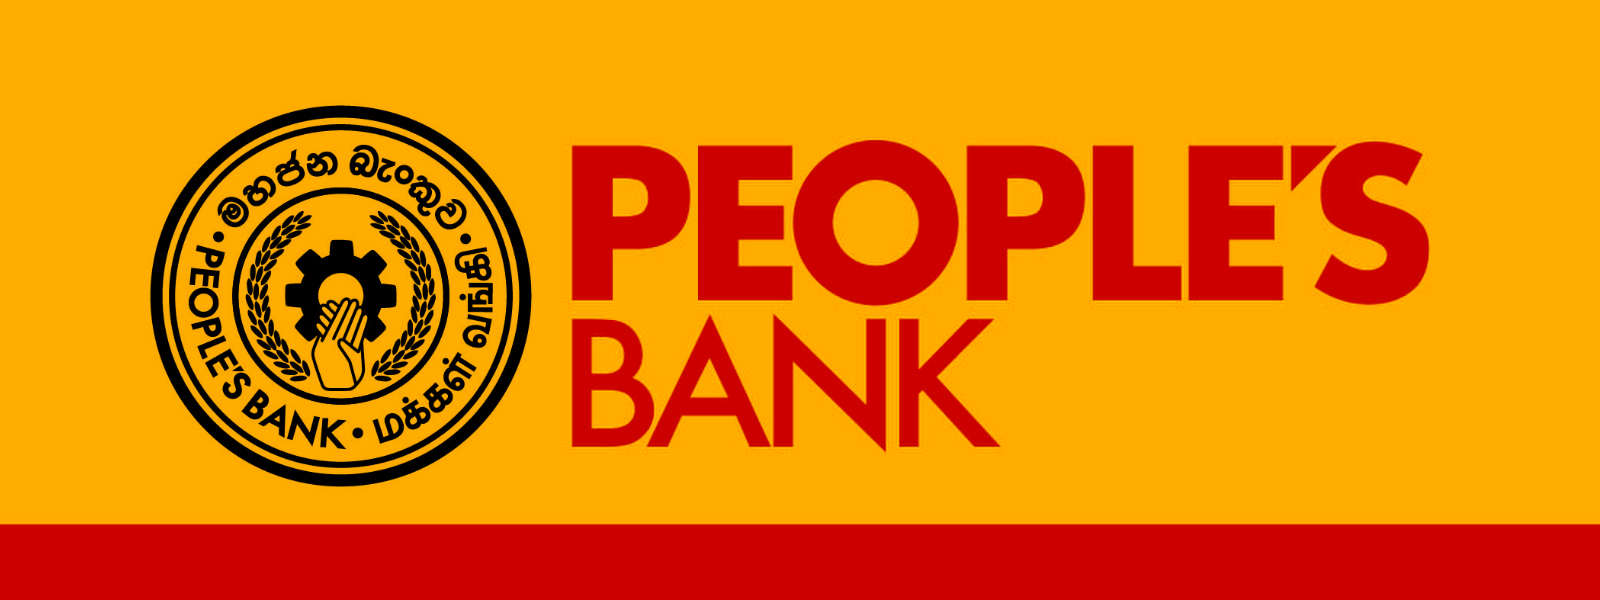 bank peoples lk peoplesbank loan cope banks board extension request service rejects gm 10bn grants member sampath mawatha colombo sir